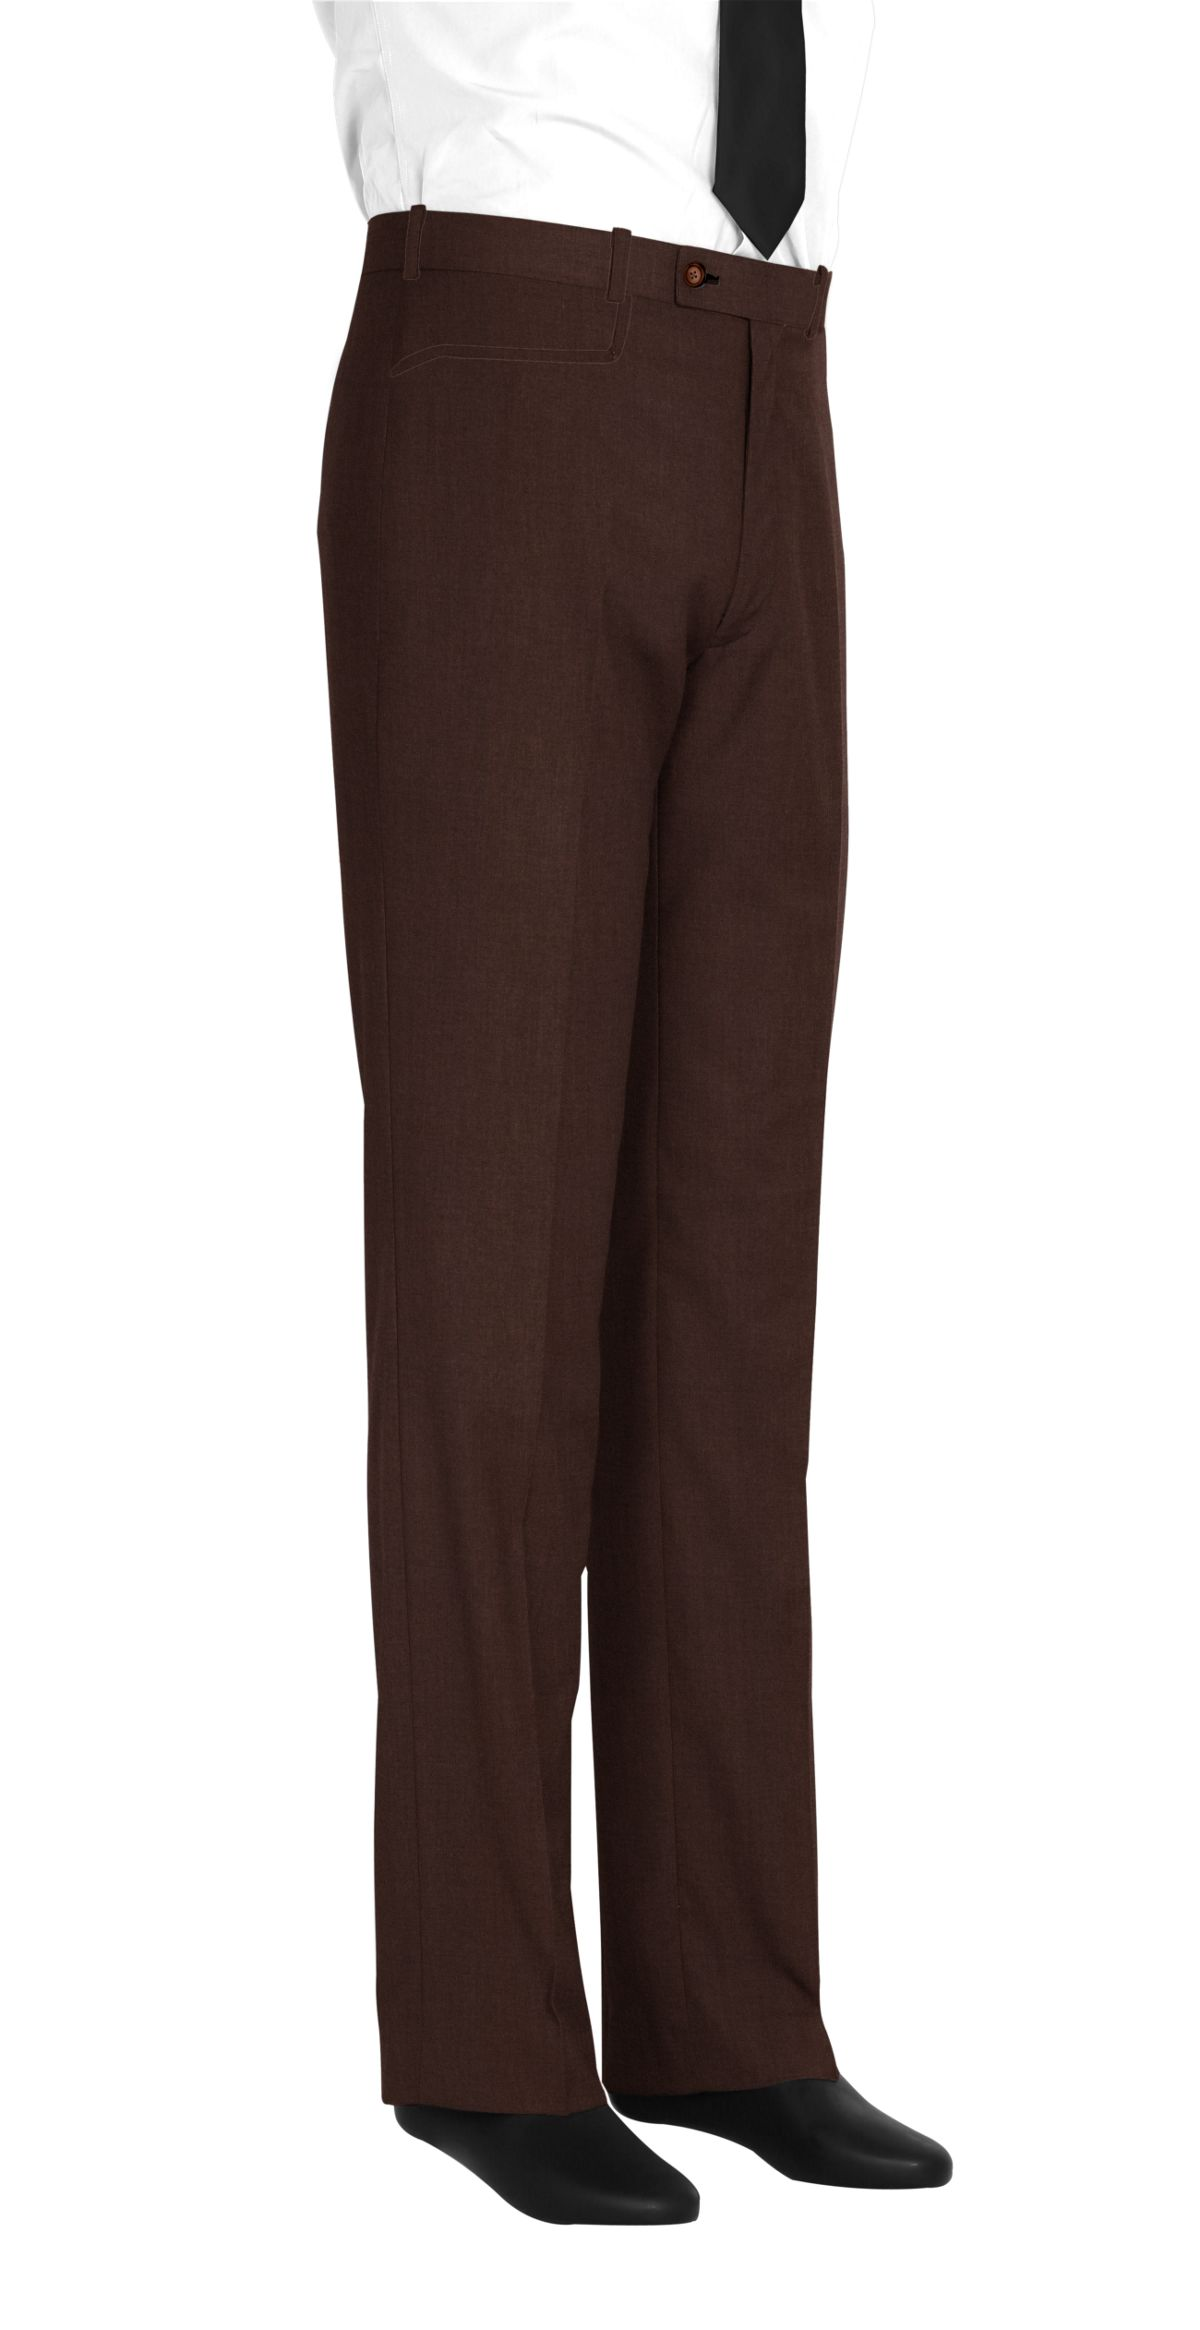 Pantalon marron uni